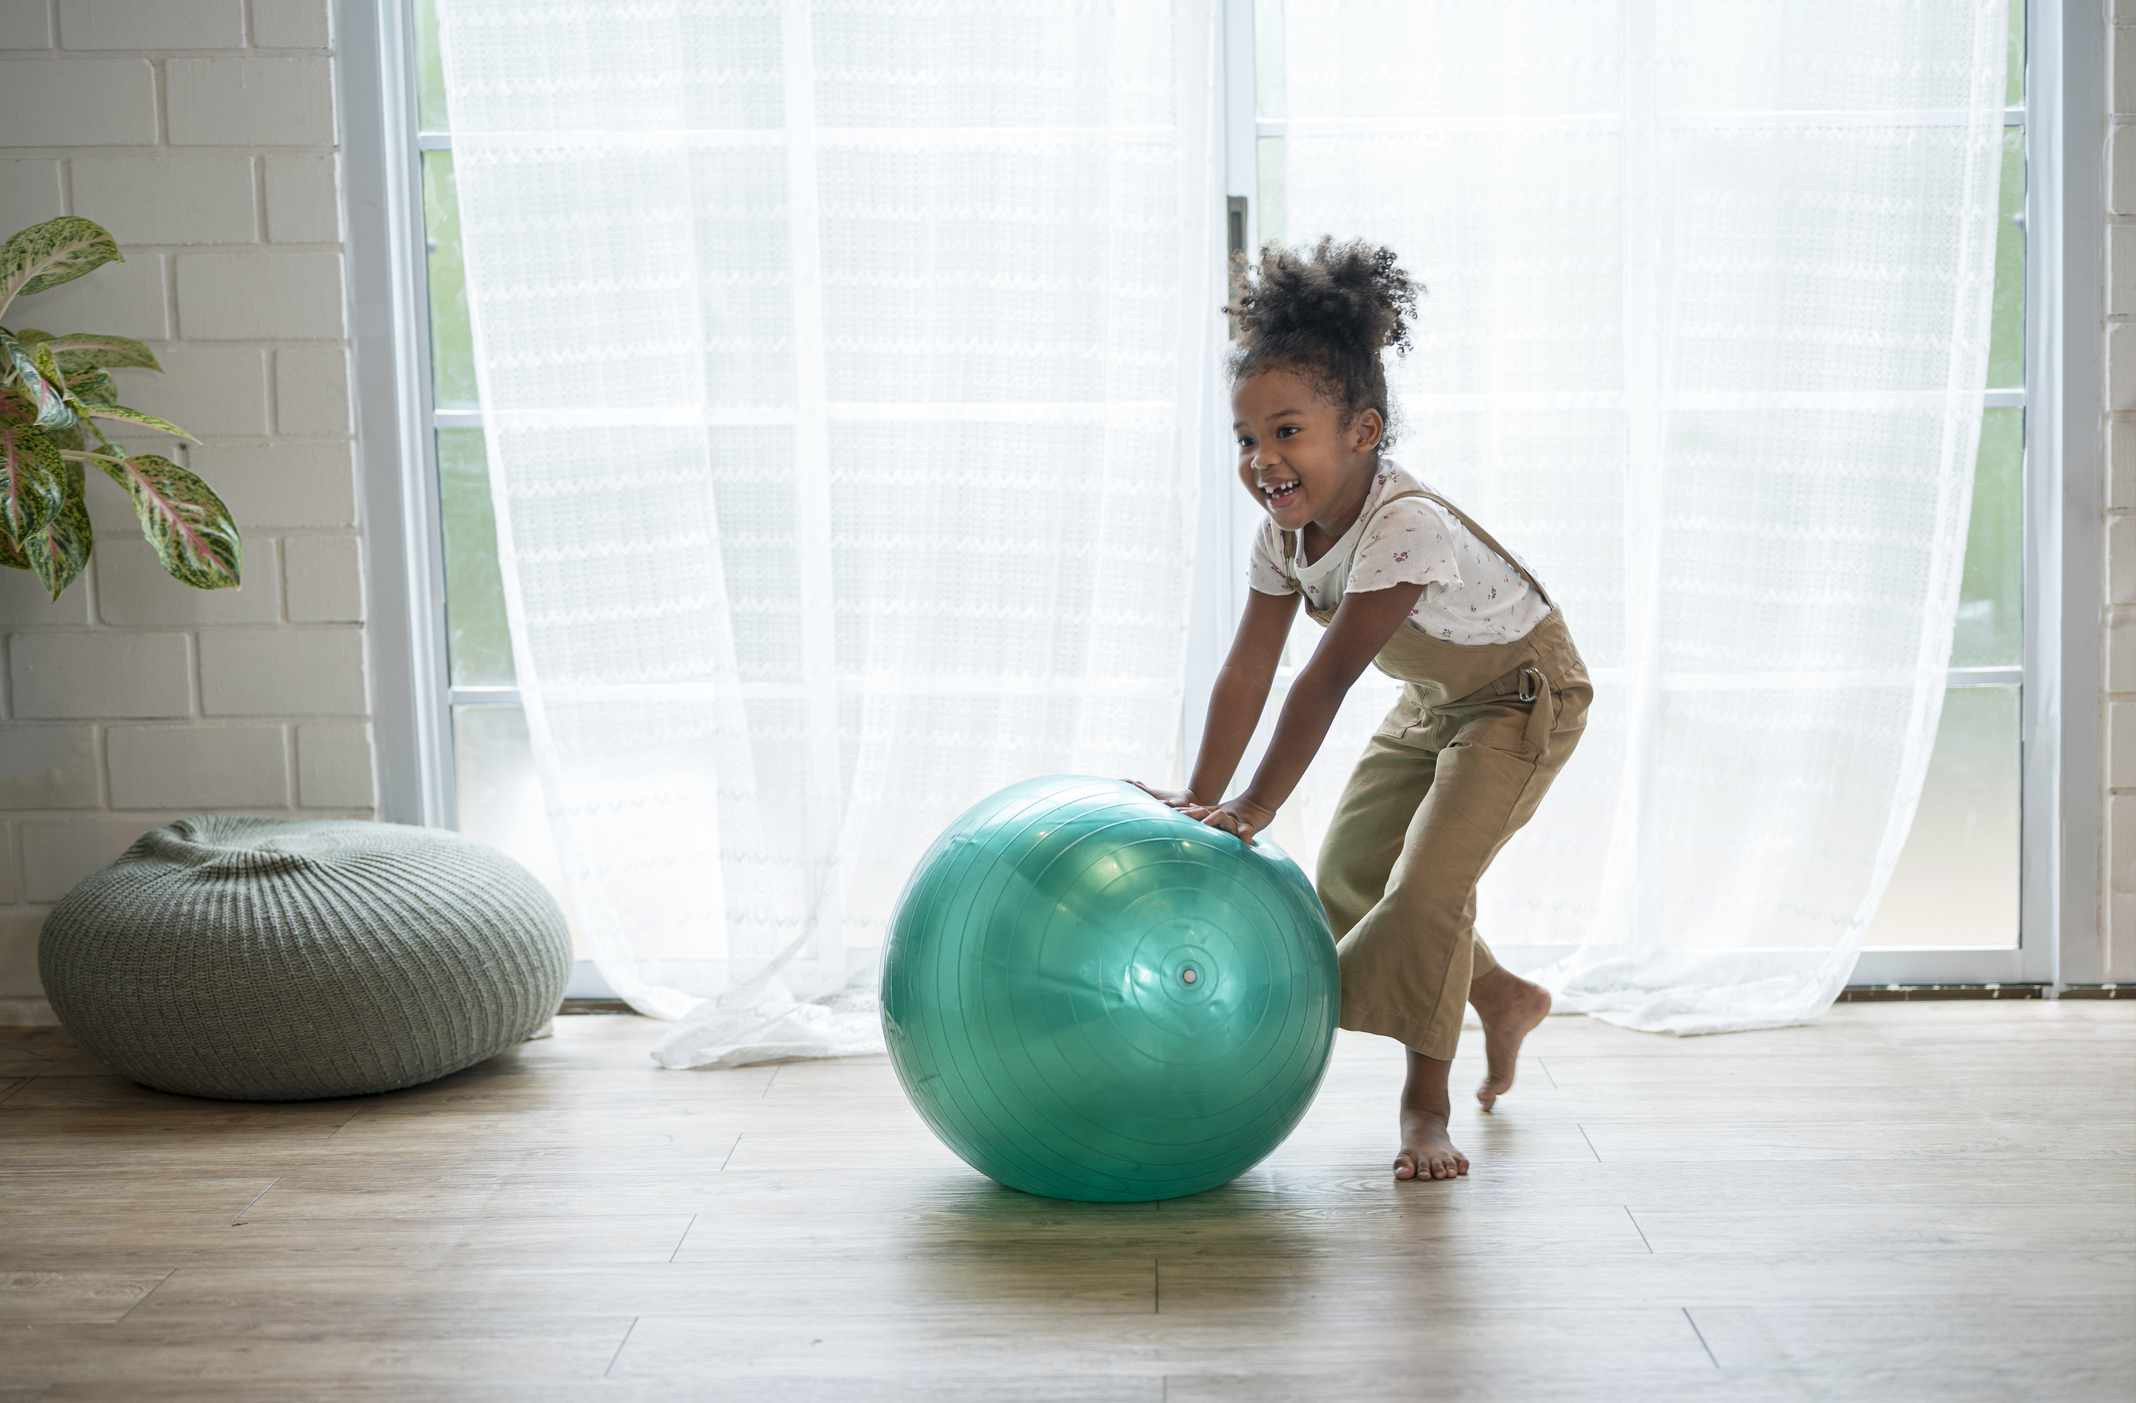 A girl playing with a bright green yoga ball inside